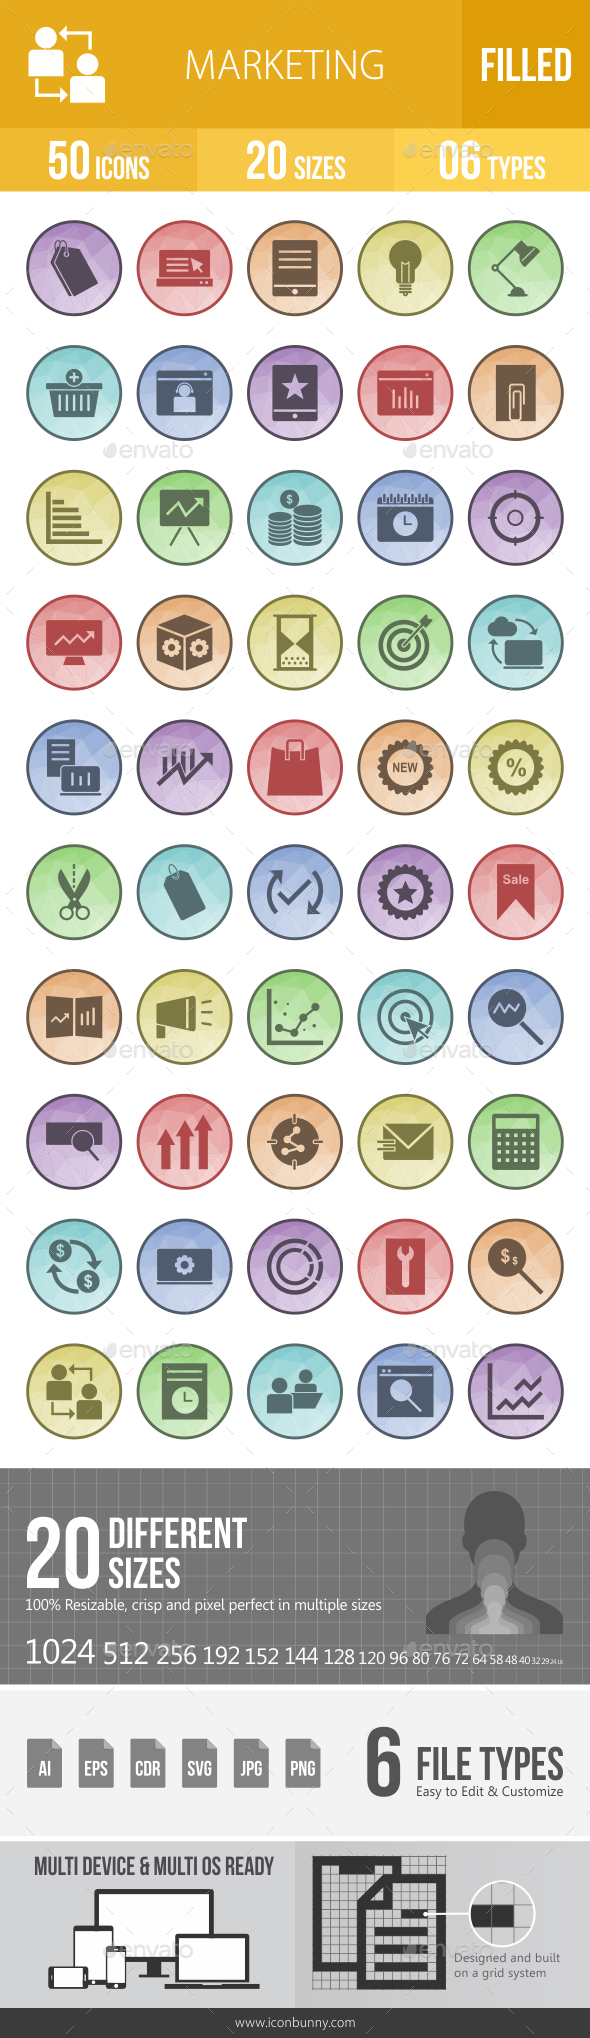 GraphicRiver 50 Marketing Filled Low Poly Icons 21176620